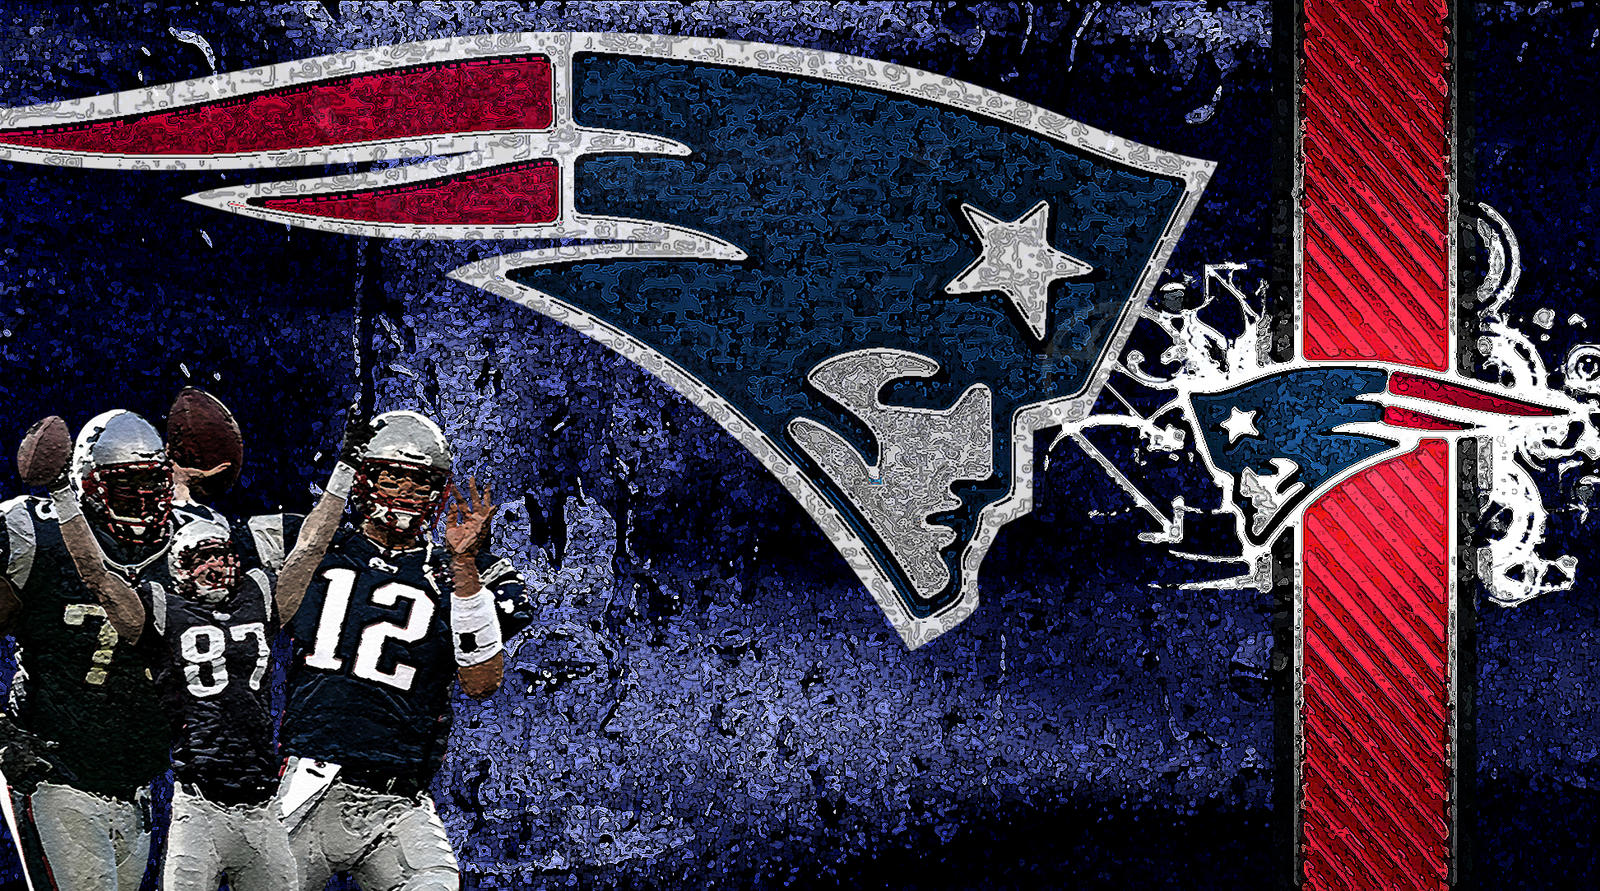 New england patriots wallpaper by cthebeast123 on deviantart new england patriots wallpaper by cthebeast123 new england patriots wallpaper by cthebeast123 voltagebd Choice Image